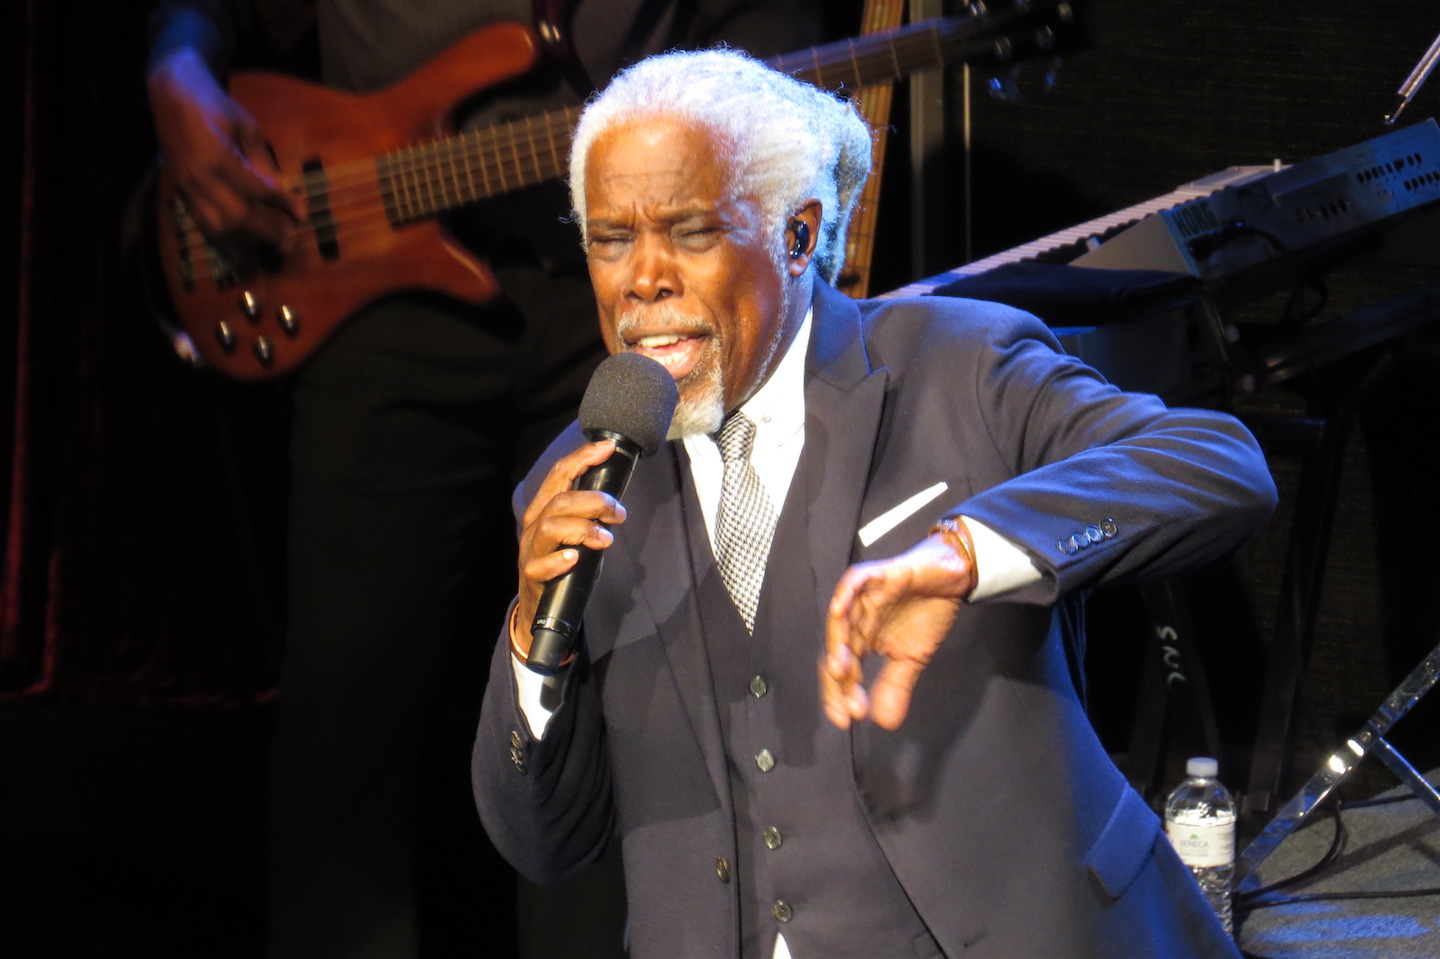 billy ocean - photo #26